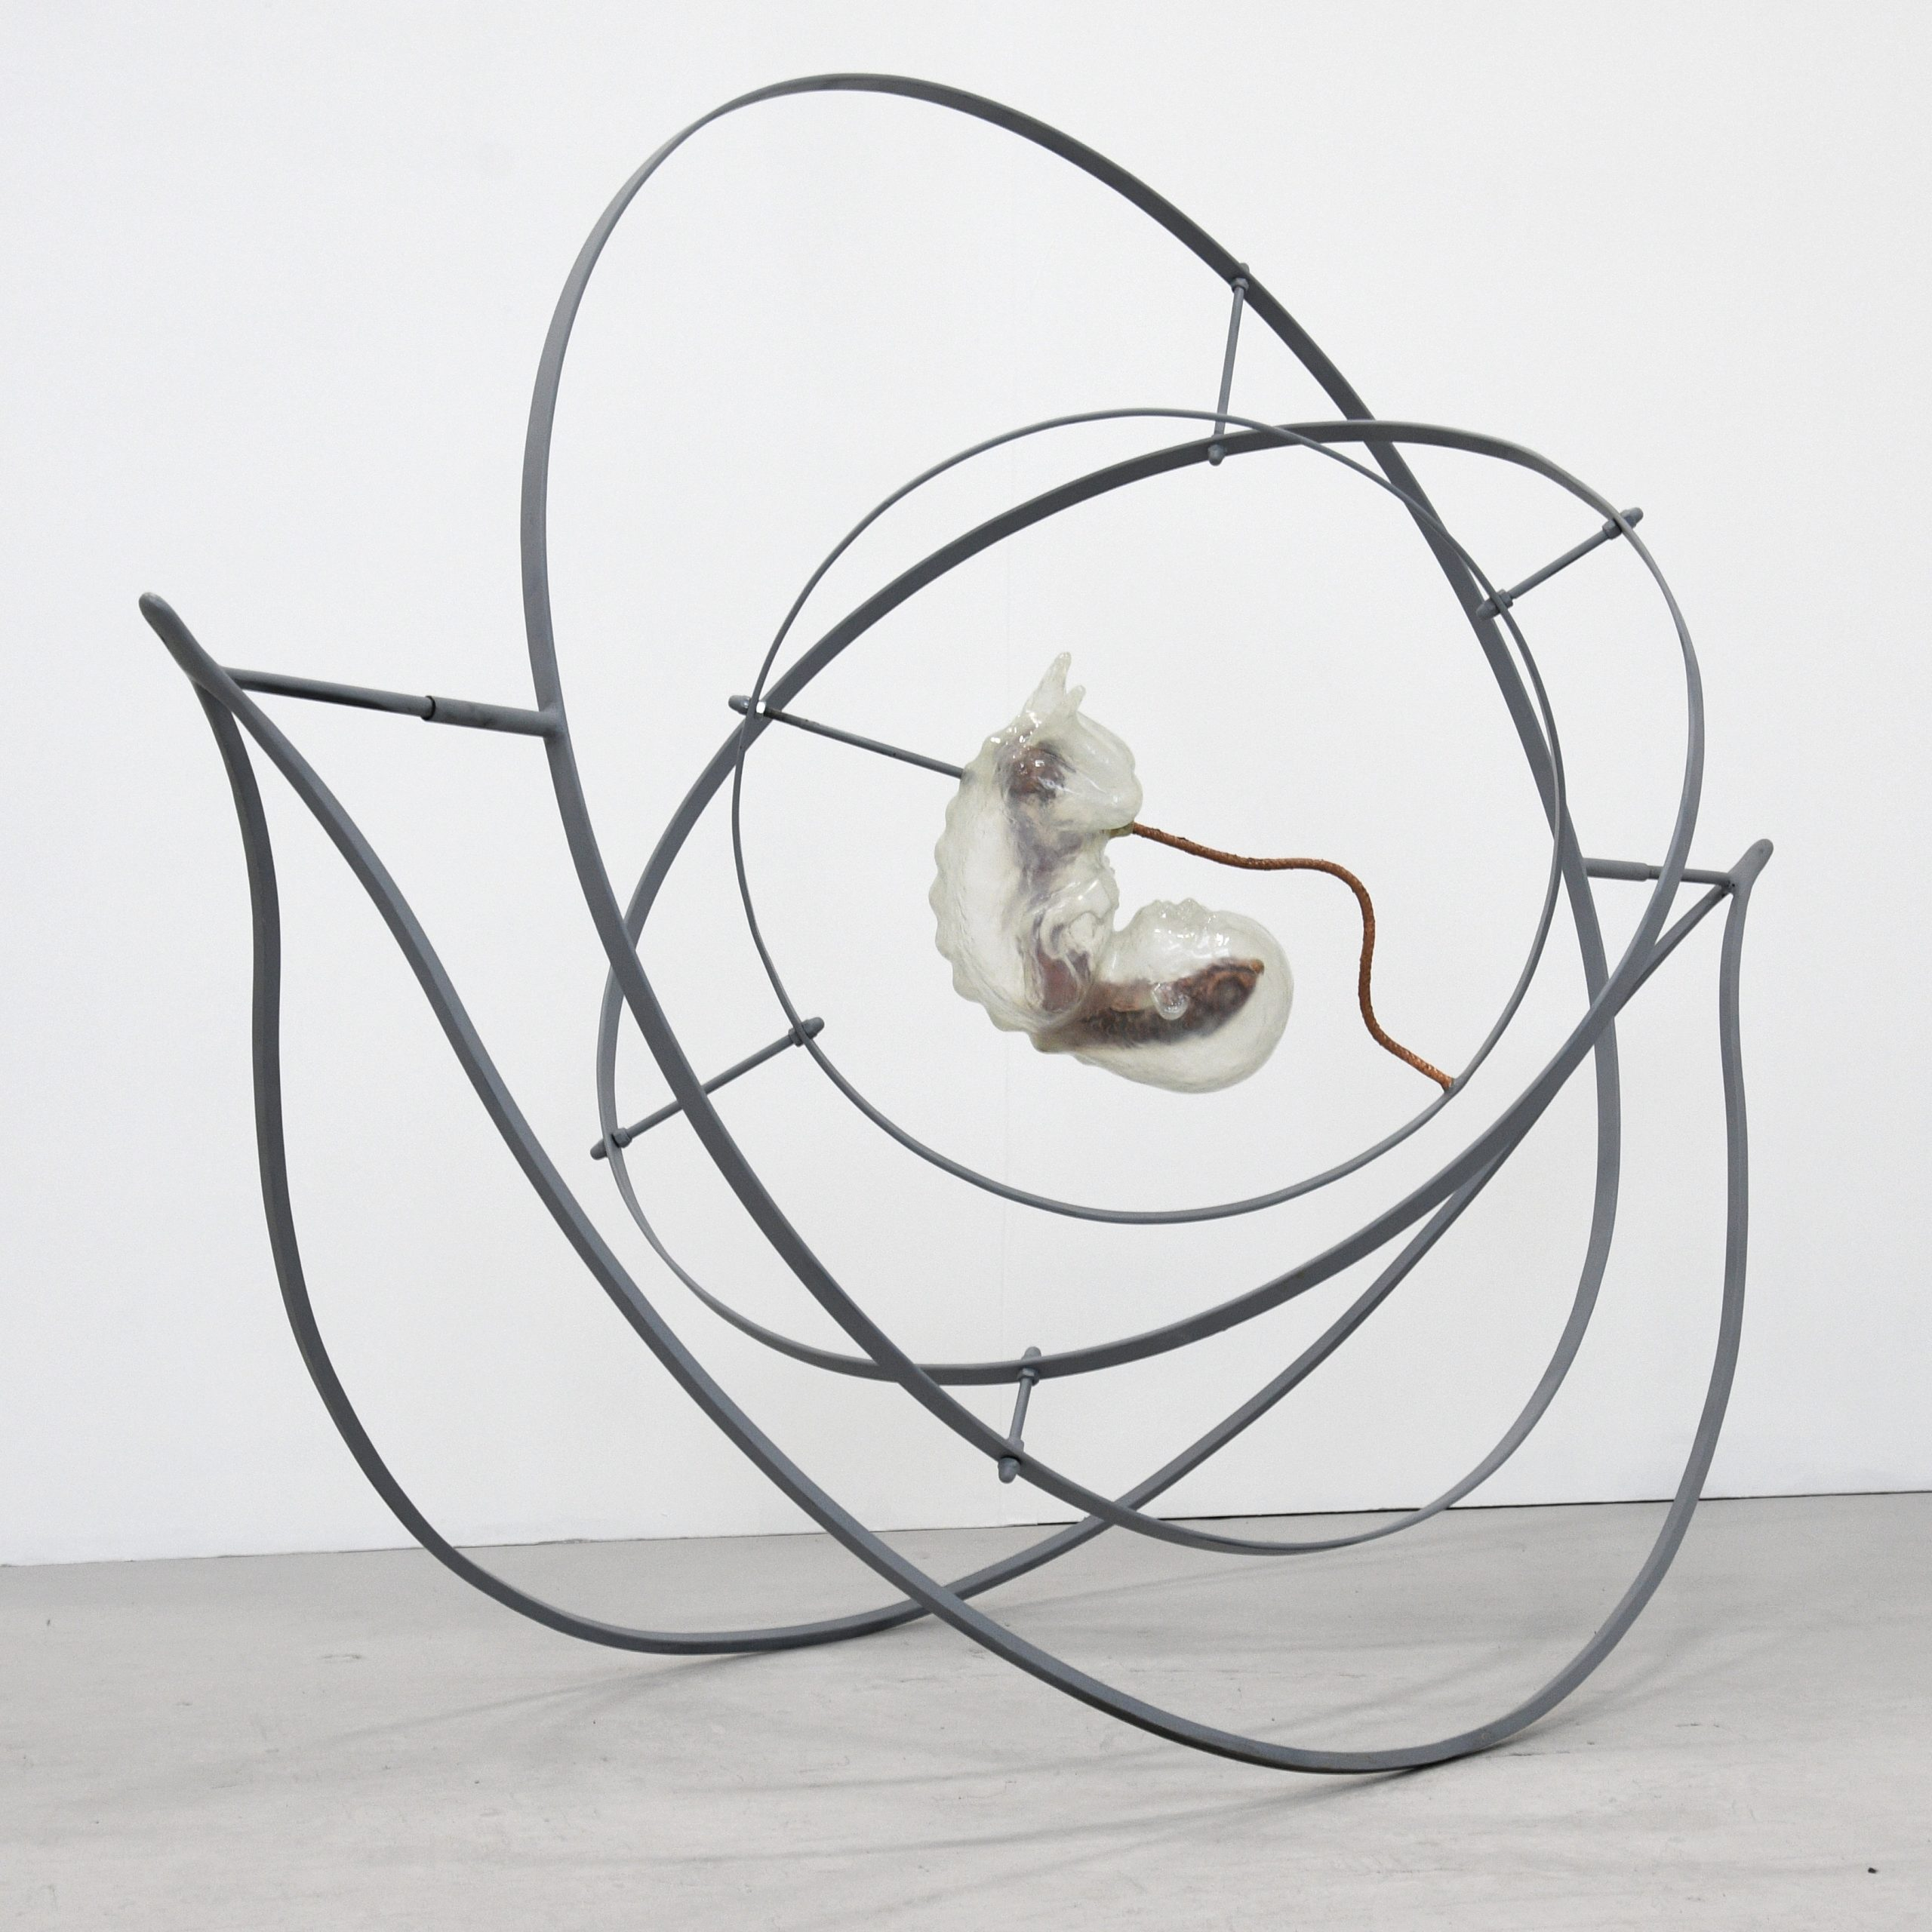 A metallic sculptural piece. It is reminiscent of a double helix. A foetal figure sits in the centre.